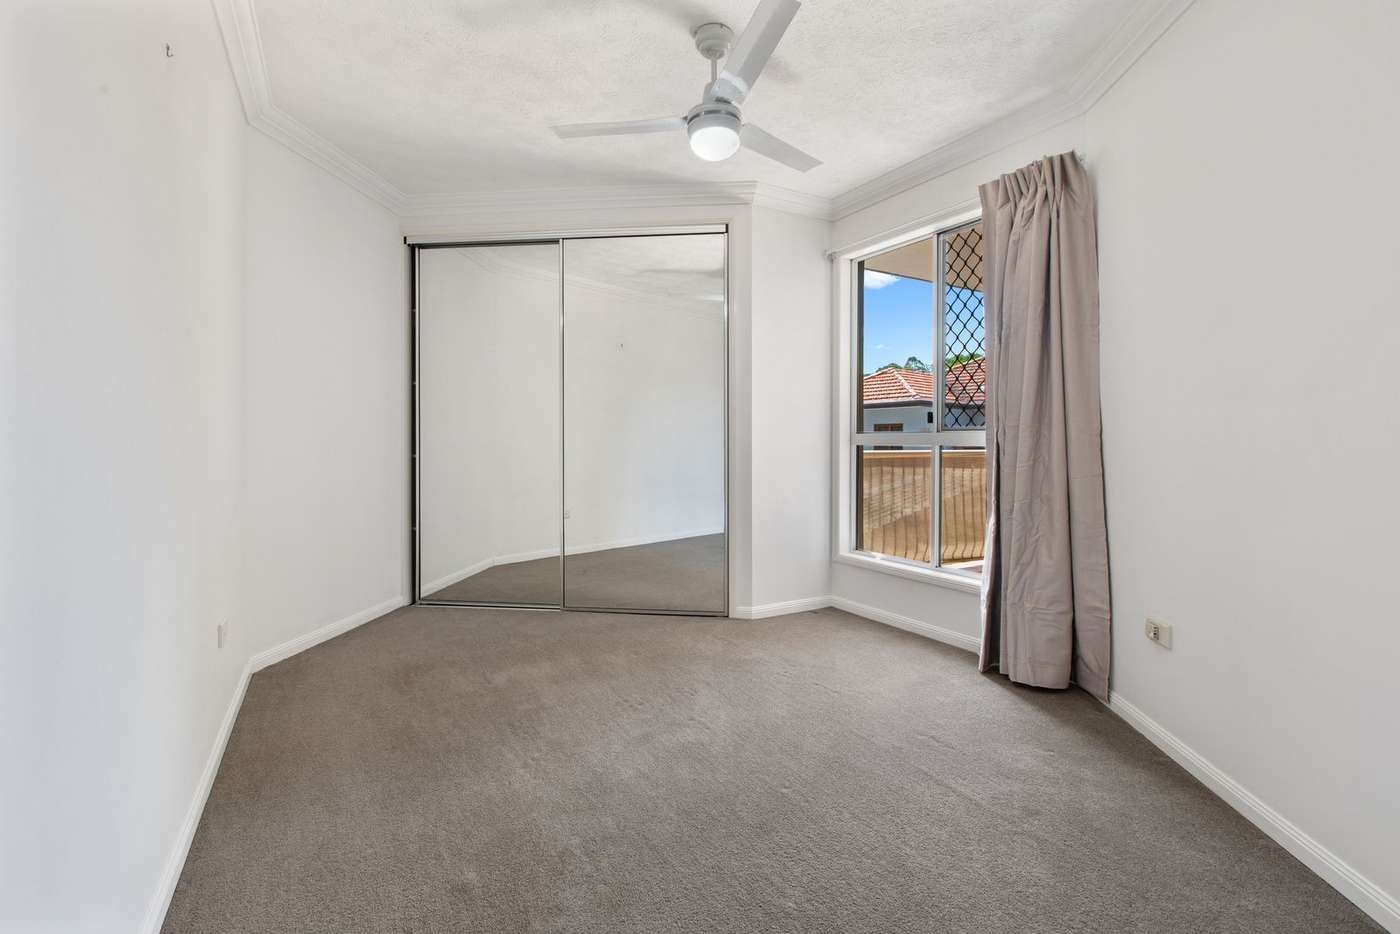 Sixth view of Homely unit listing, 12/81 Annerley Road, Woolloongabba QLD 4102